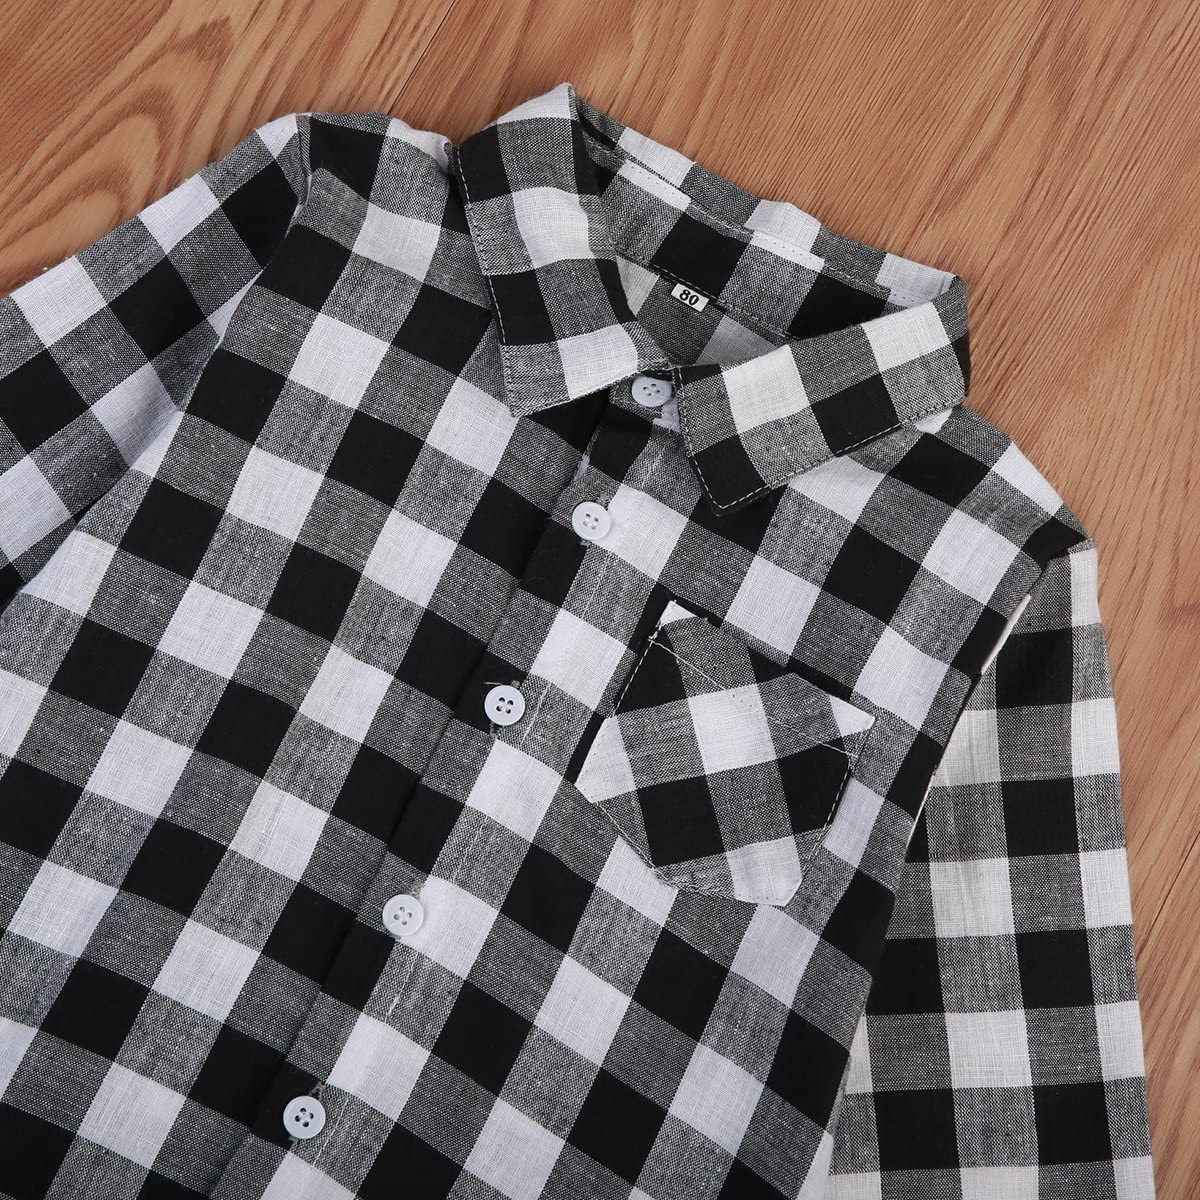 Imcute Toddler Baby Boys Girls Long Sleeve Casual Grey Plaid Shirt Top for Autumn Winter